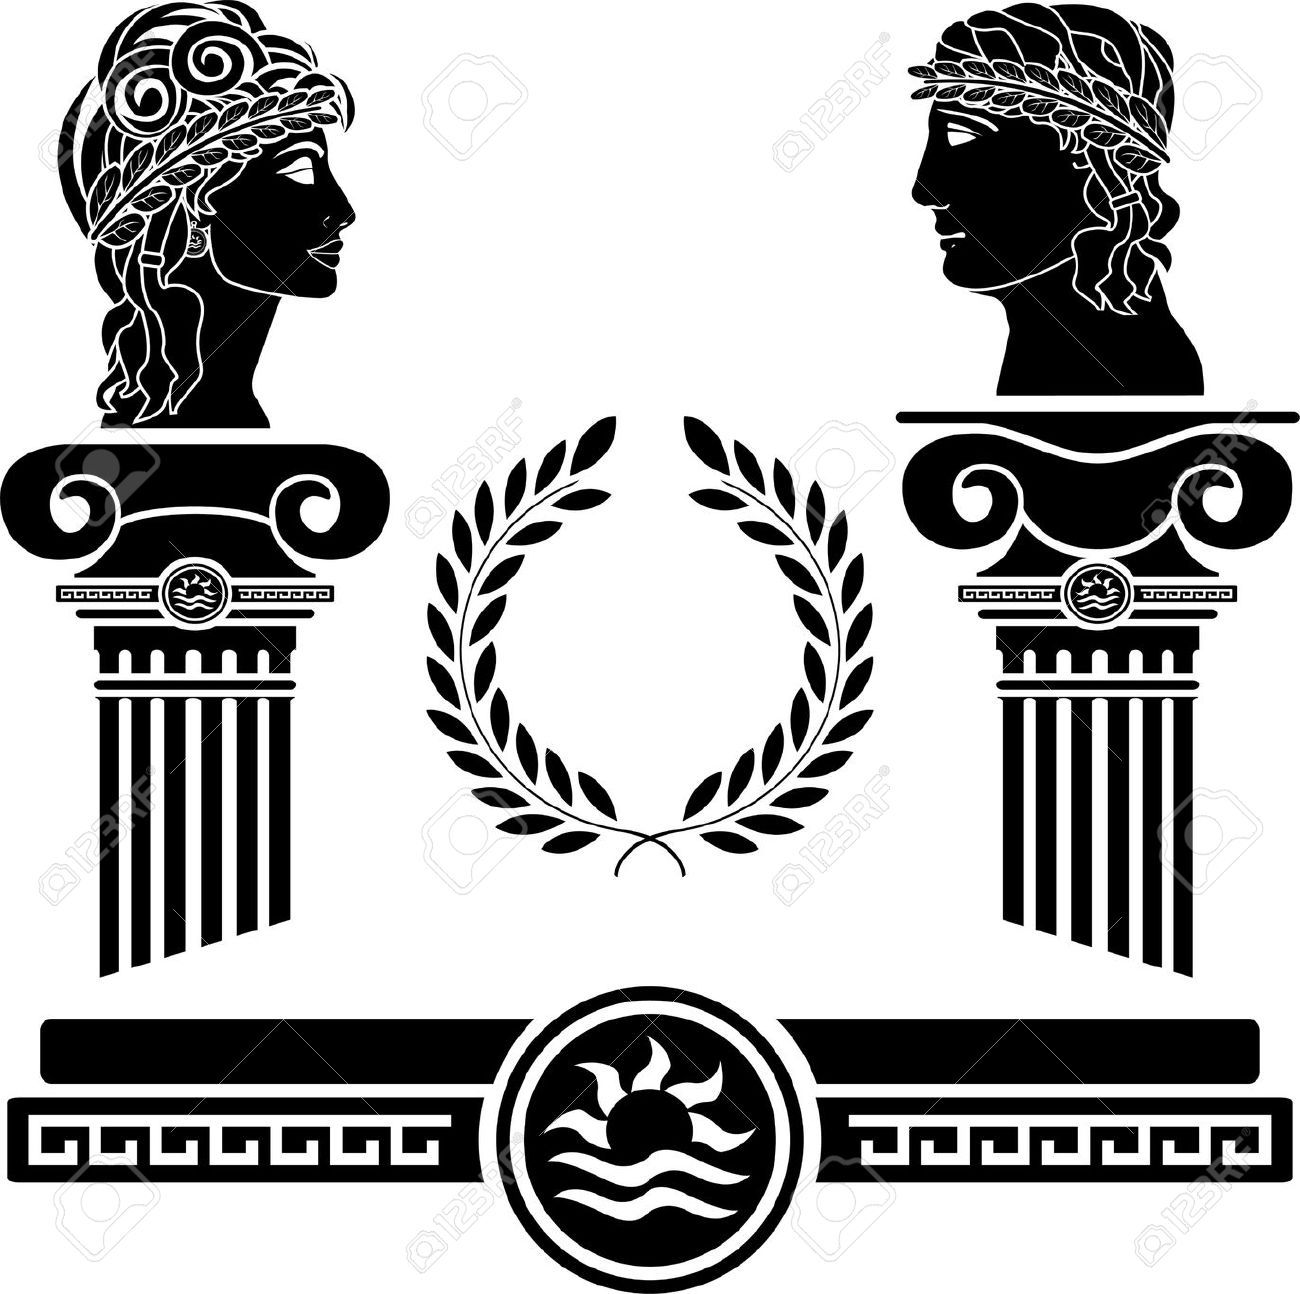 1300x1294 Greek Columns And Human Heads. Vector Illustration Greek Design